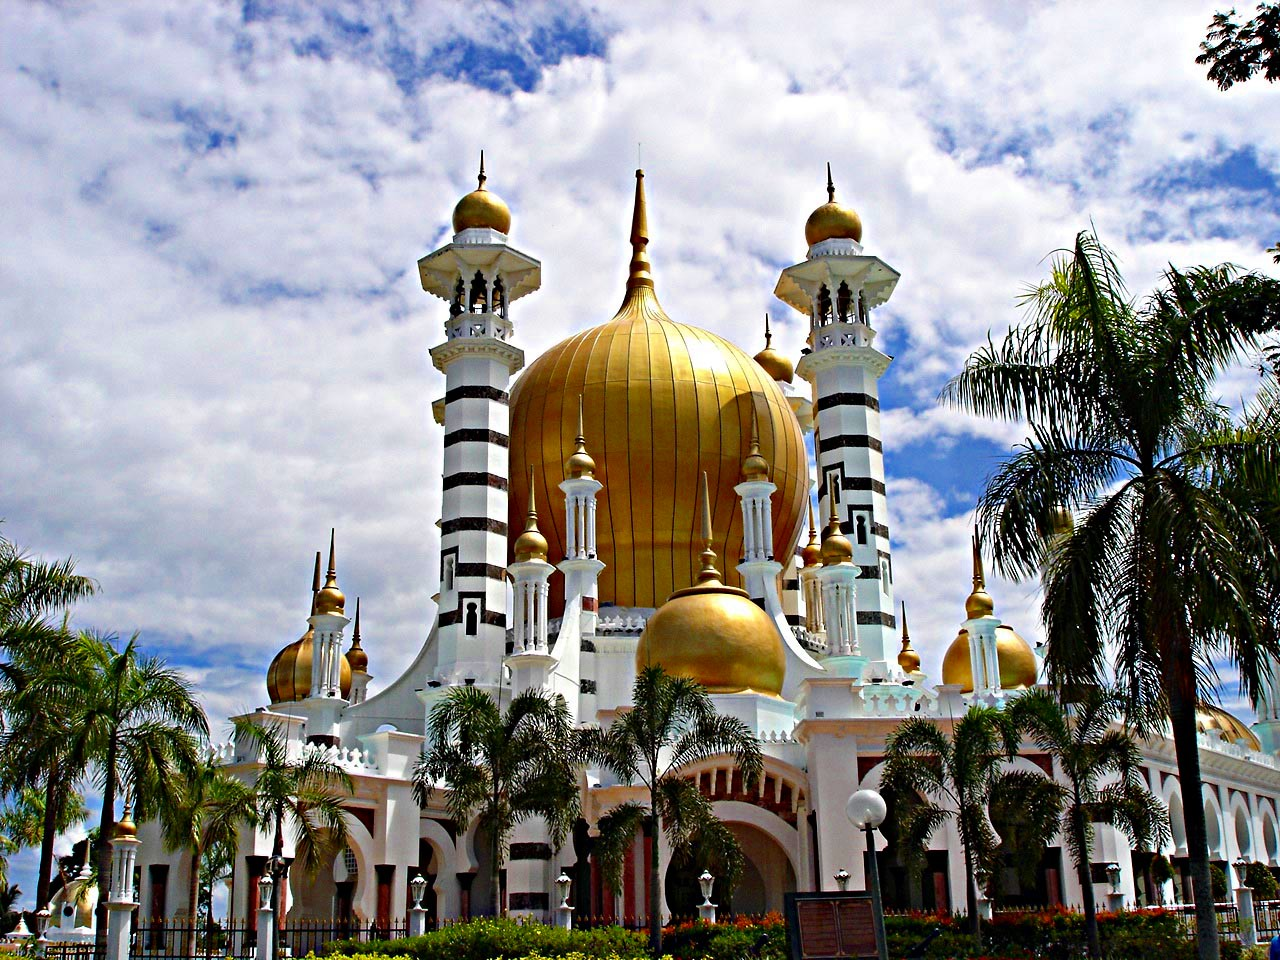 Kuala Kangsar Malaysia  City pictures : To view the Top 10 Most Unique Mosques in Malaysia, go to: http ...